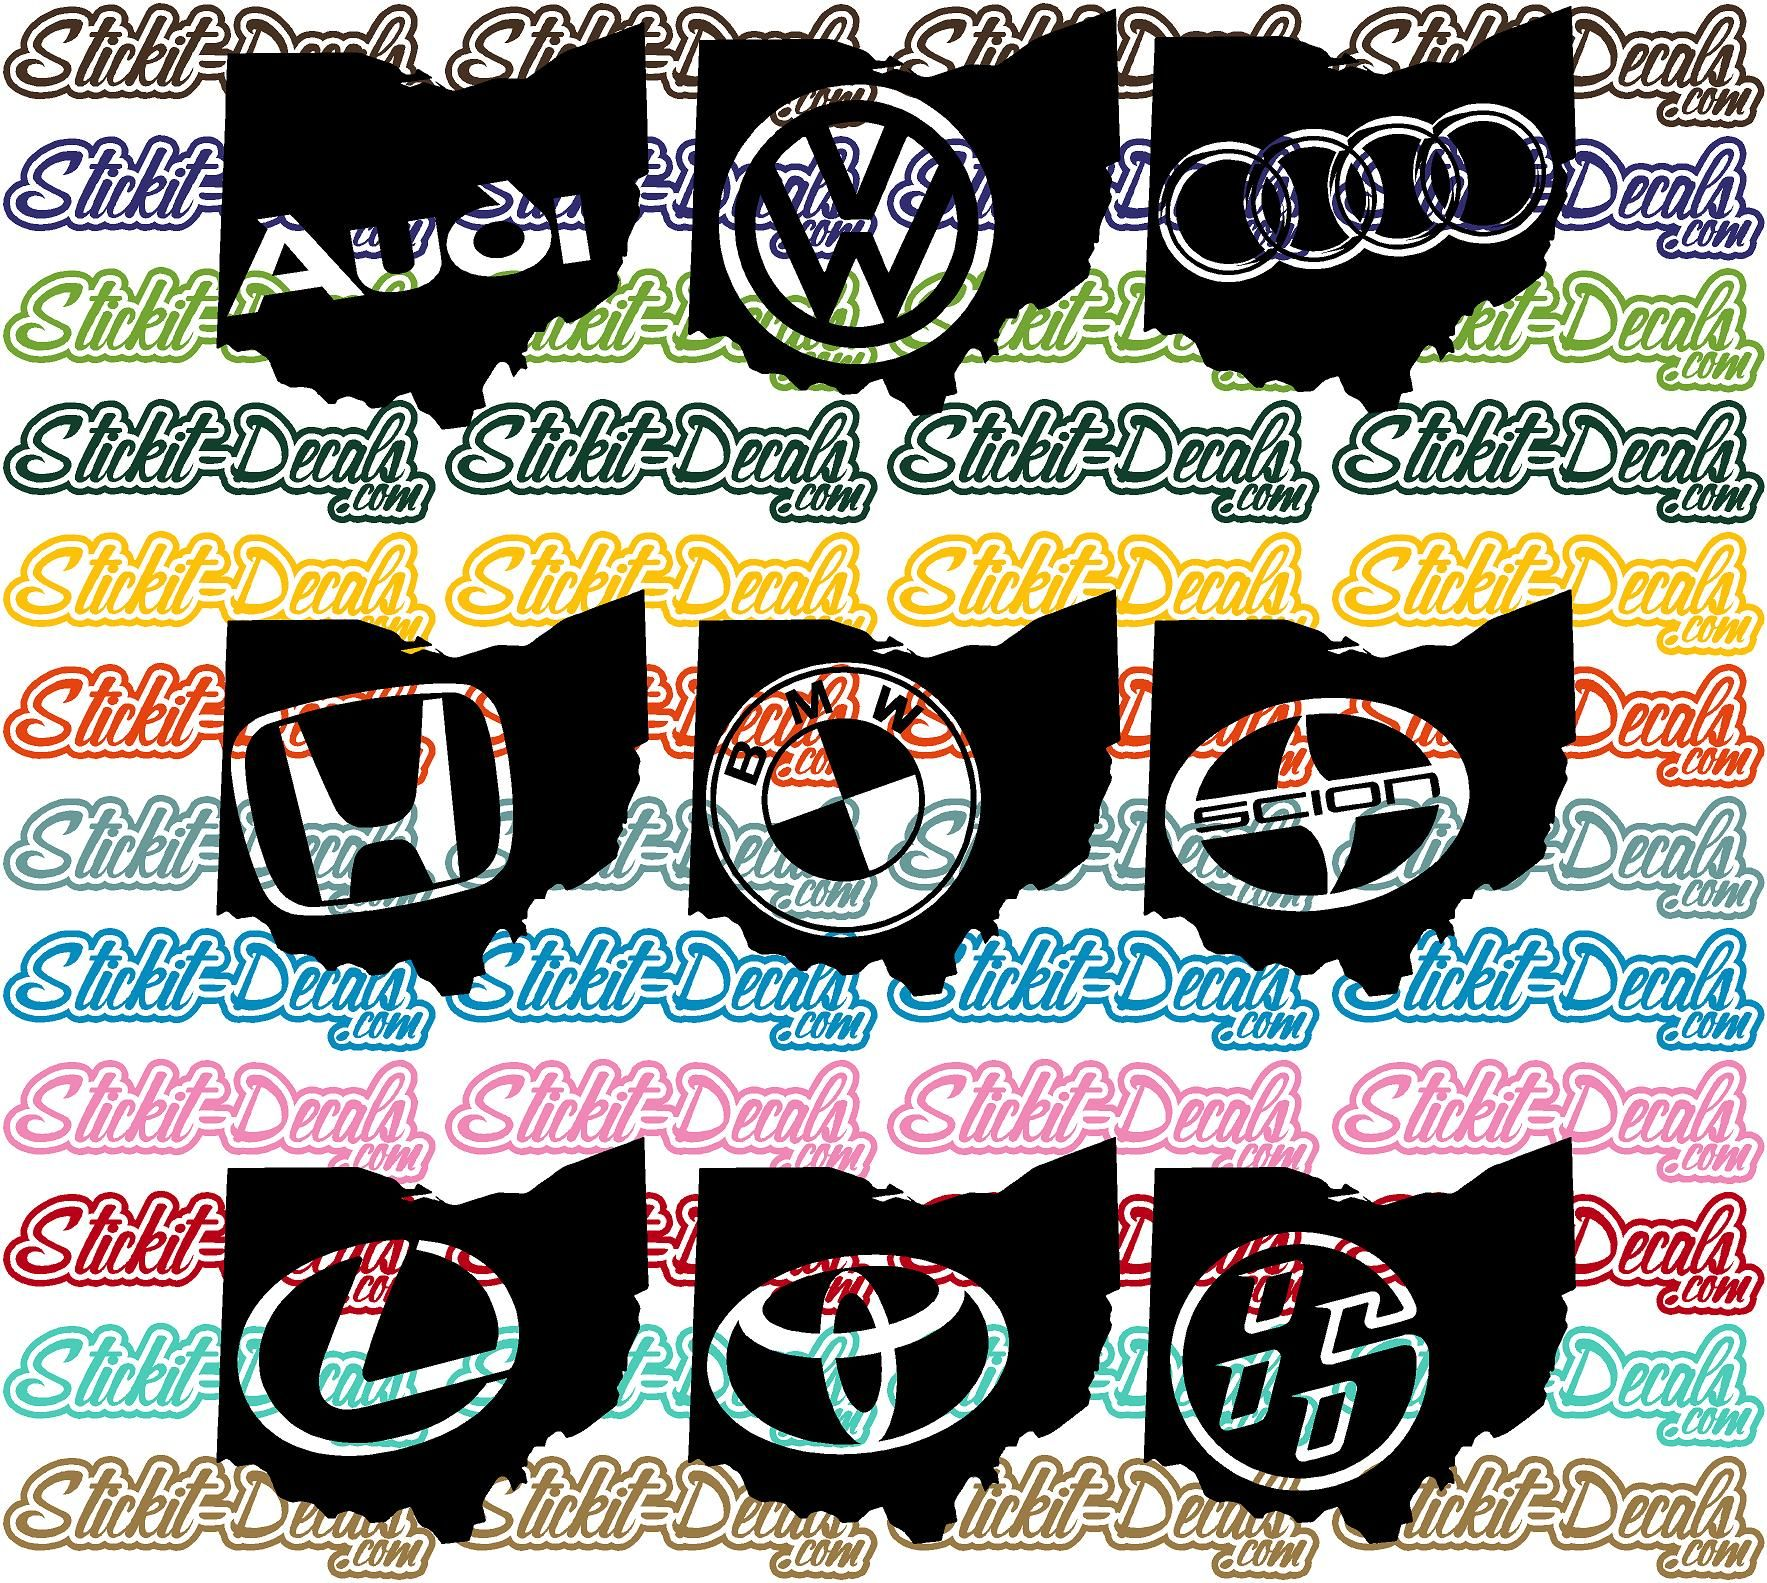 Ohio Silhouette Car Logos Volkswagen VW Audi Acura Honda - Lexus custom vinyl decals for car